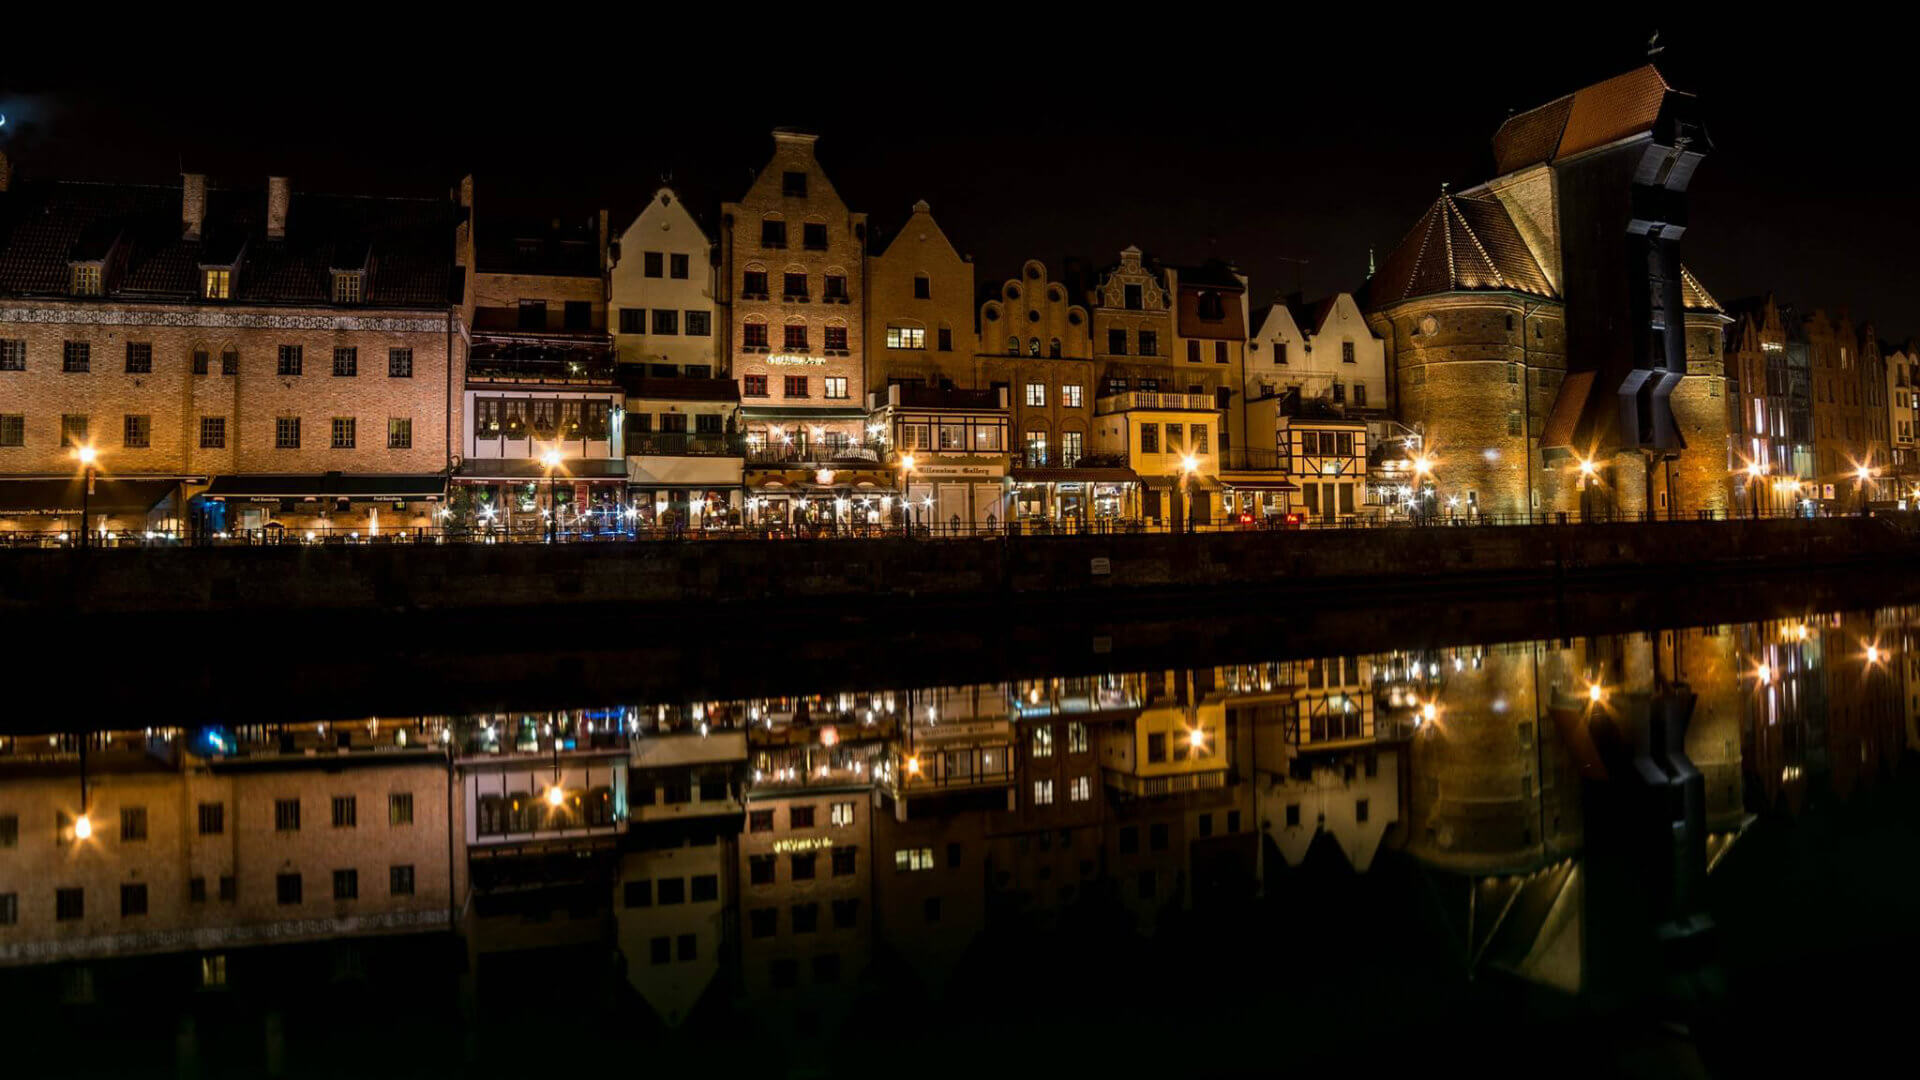 Photograph taken by Sorin Lucian - View on Merchants houses and the crane from the other side of Motława river in Old Town by night.